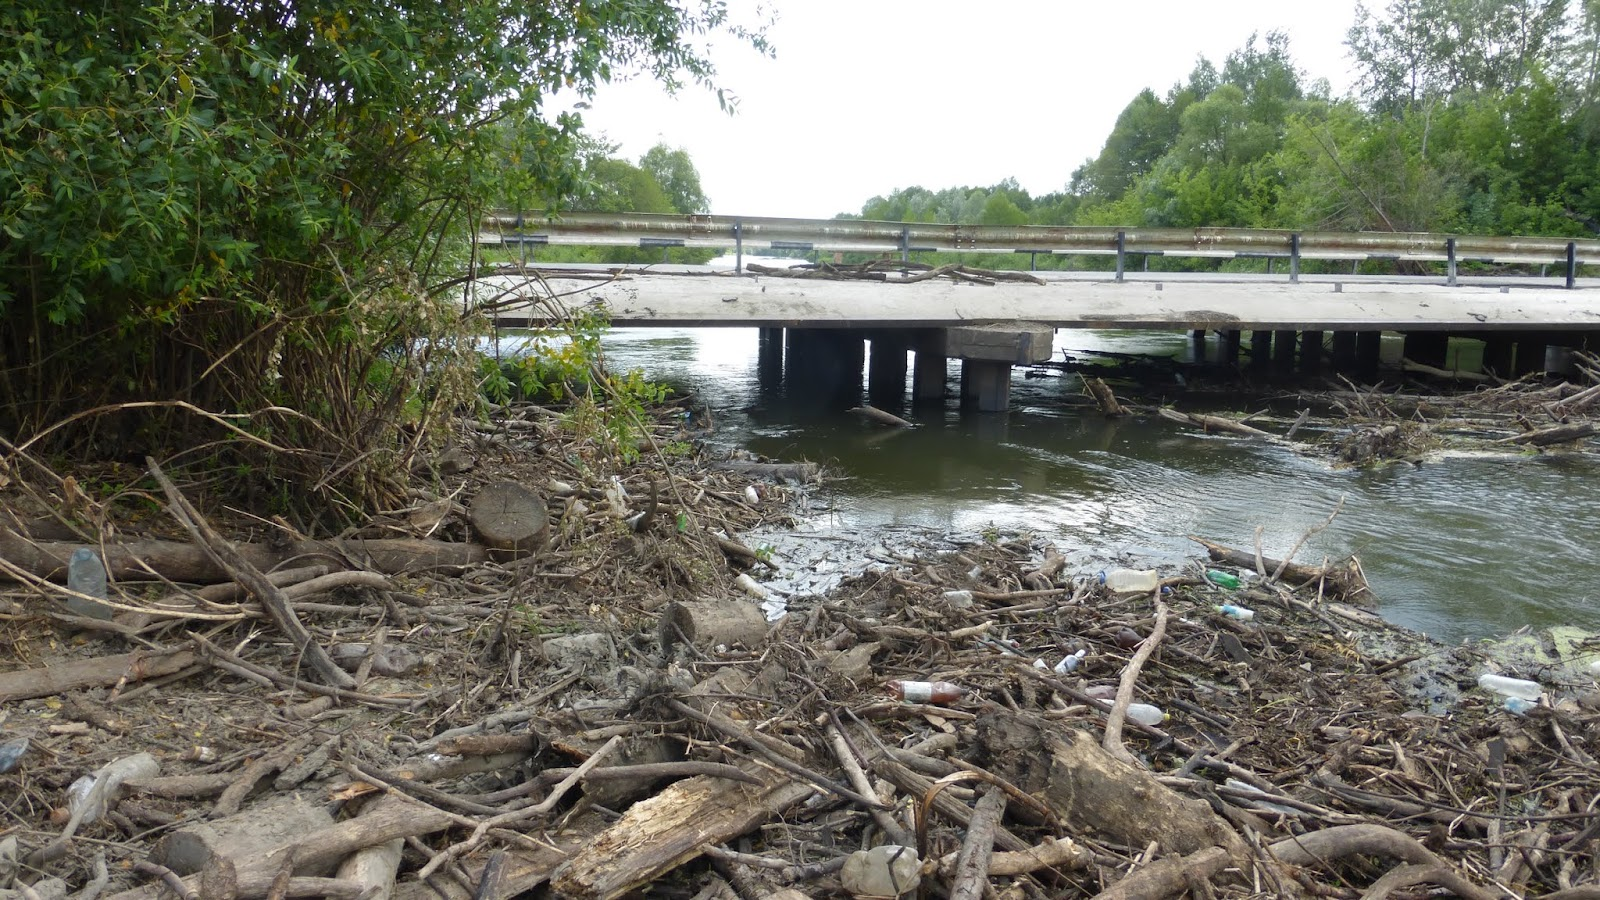 pigeon river pollution Job layoffs at issue in cleanup of pigeon river along north carolina-tennessee border since 1908, the mill has dumped its waste into the pigeon river, which flows dark, toxic, and malodorous down.